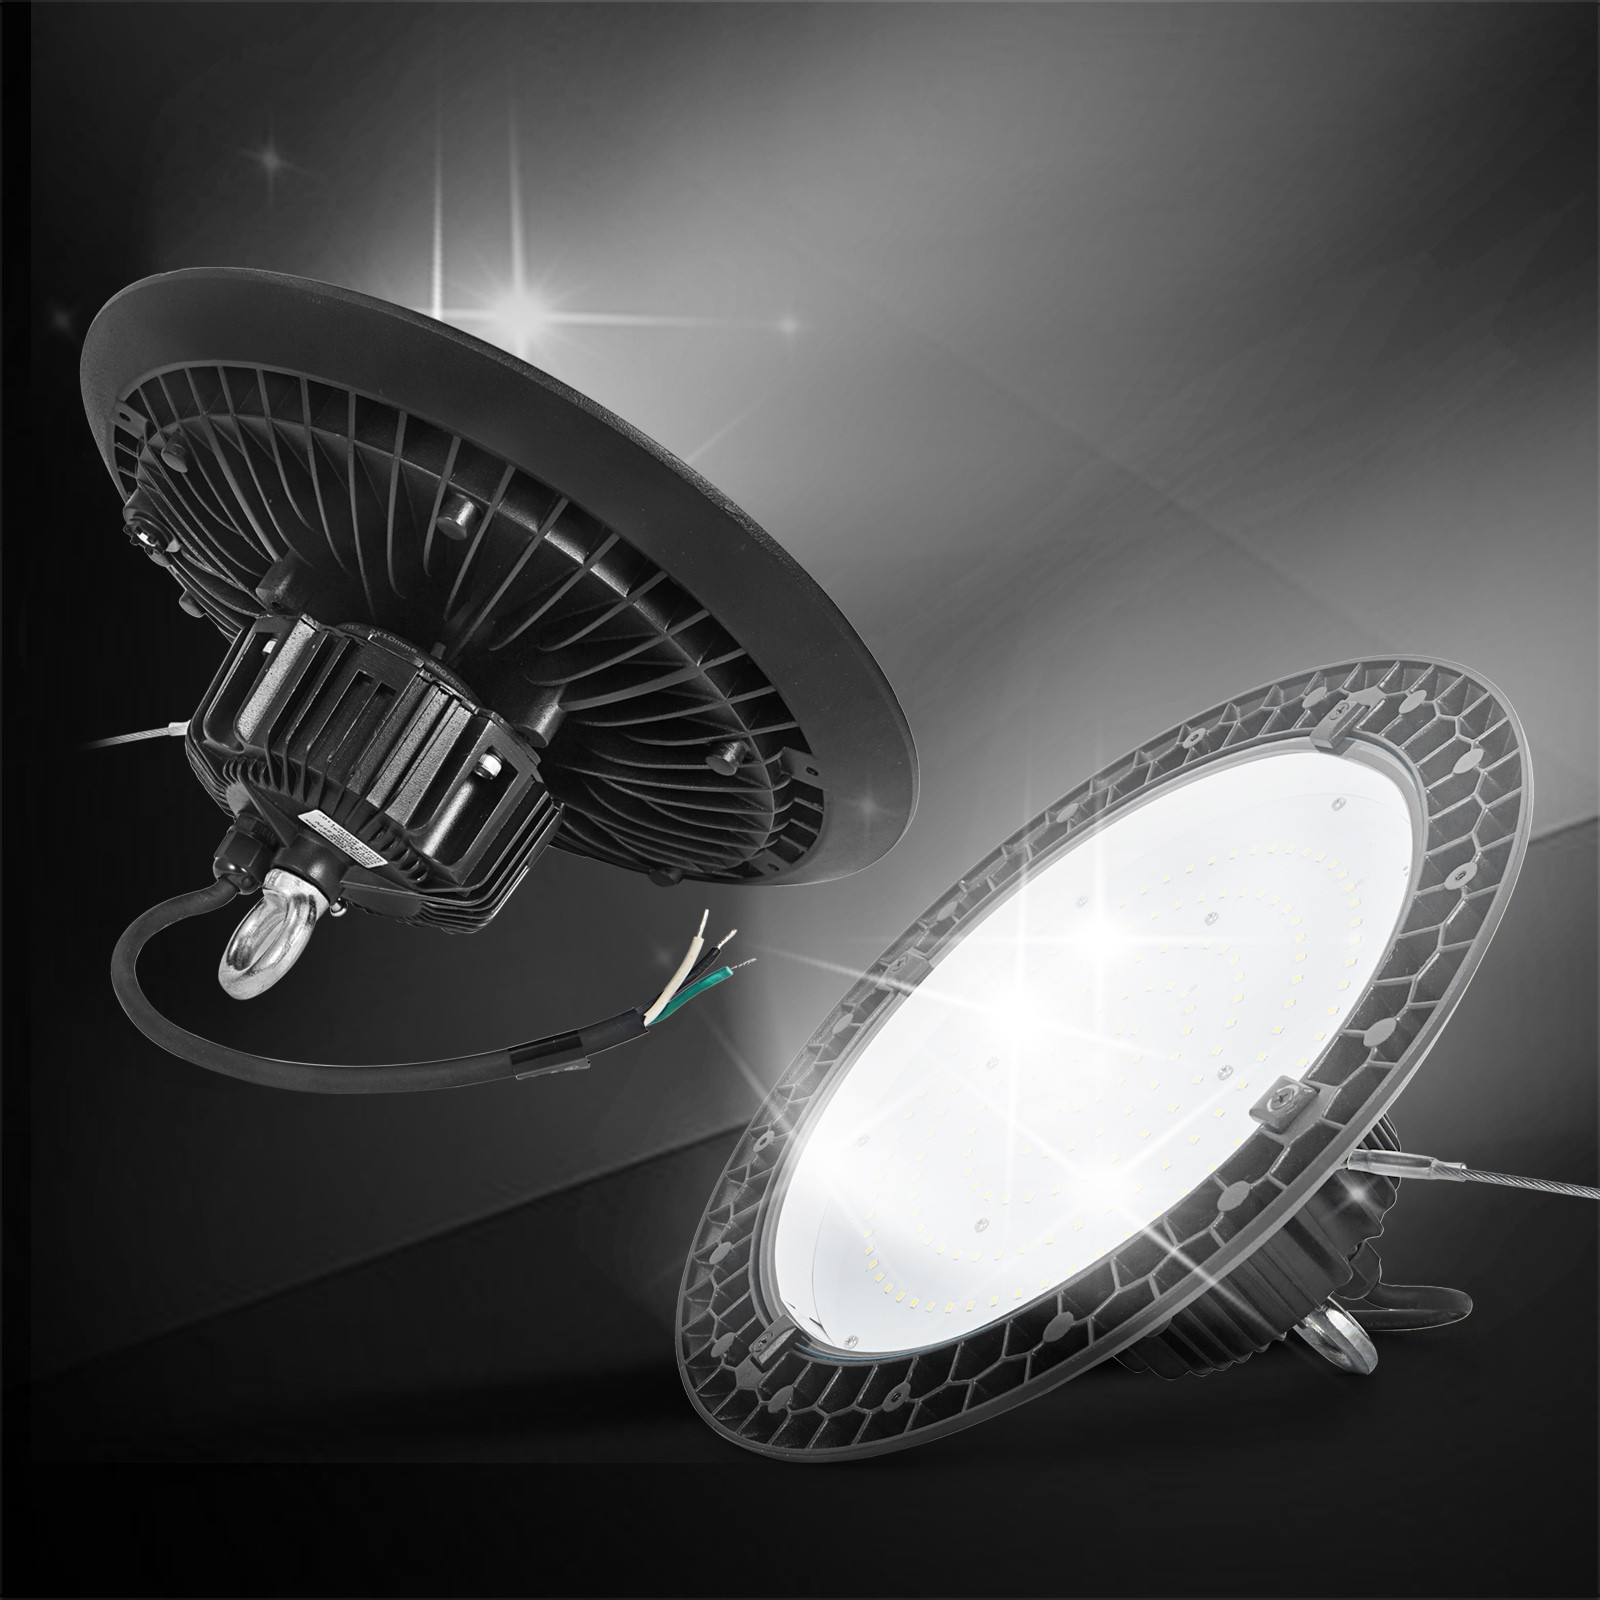 Led Light Shop 24 Ufo Led High Bay Light Fixture Warehouse Shop Lights